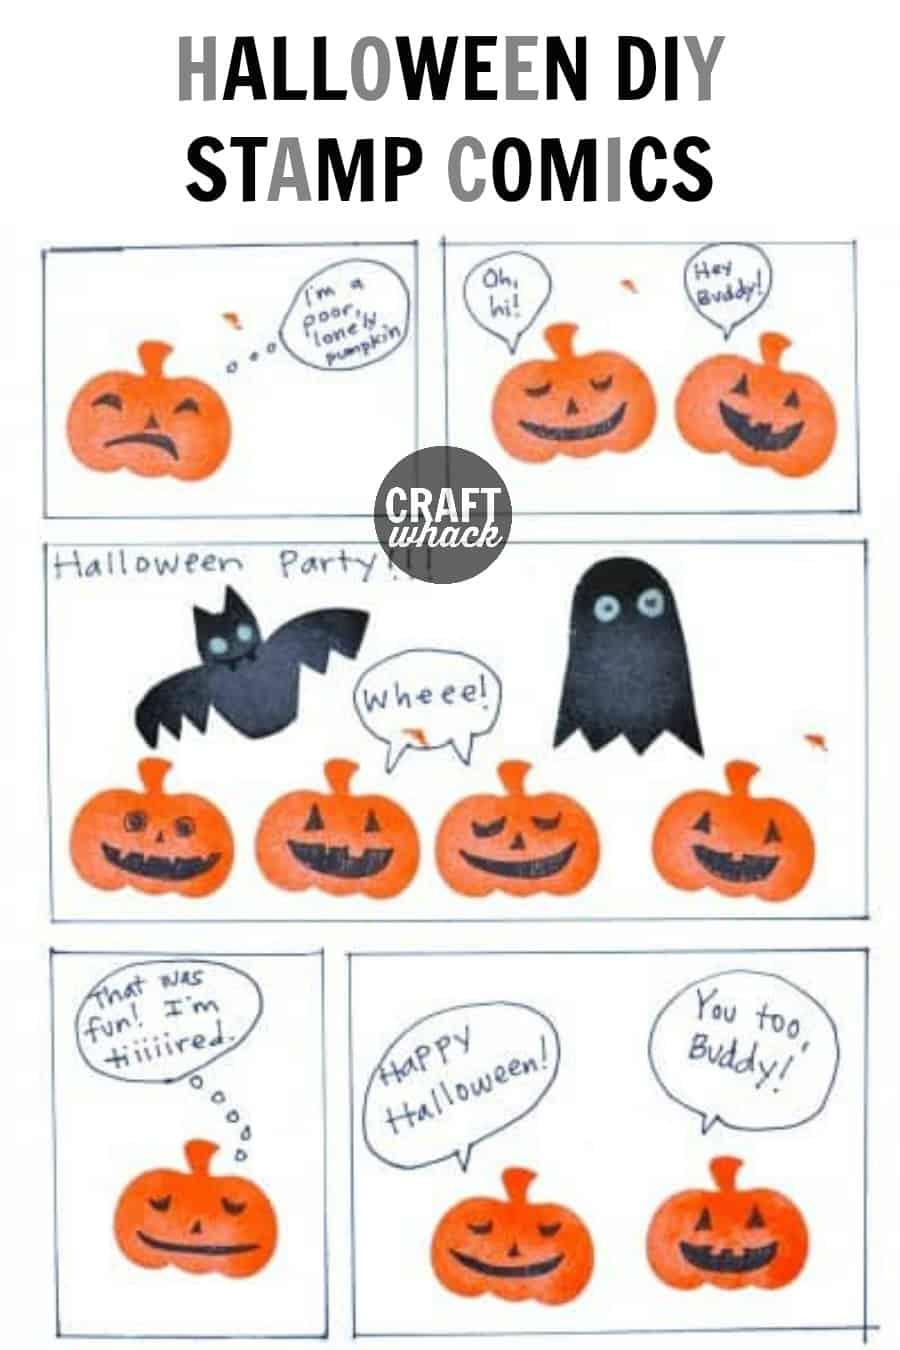 stamped jack o'lanterns, ghosts, and bats in a homemade comic page